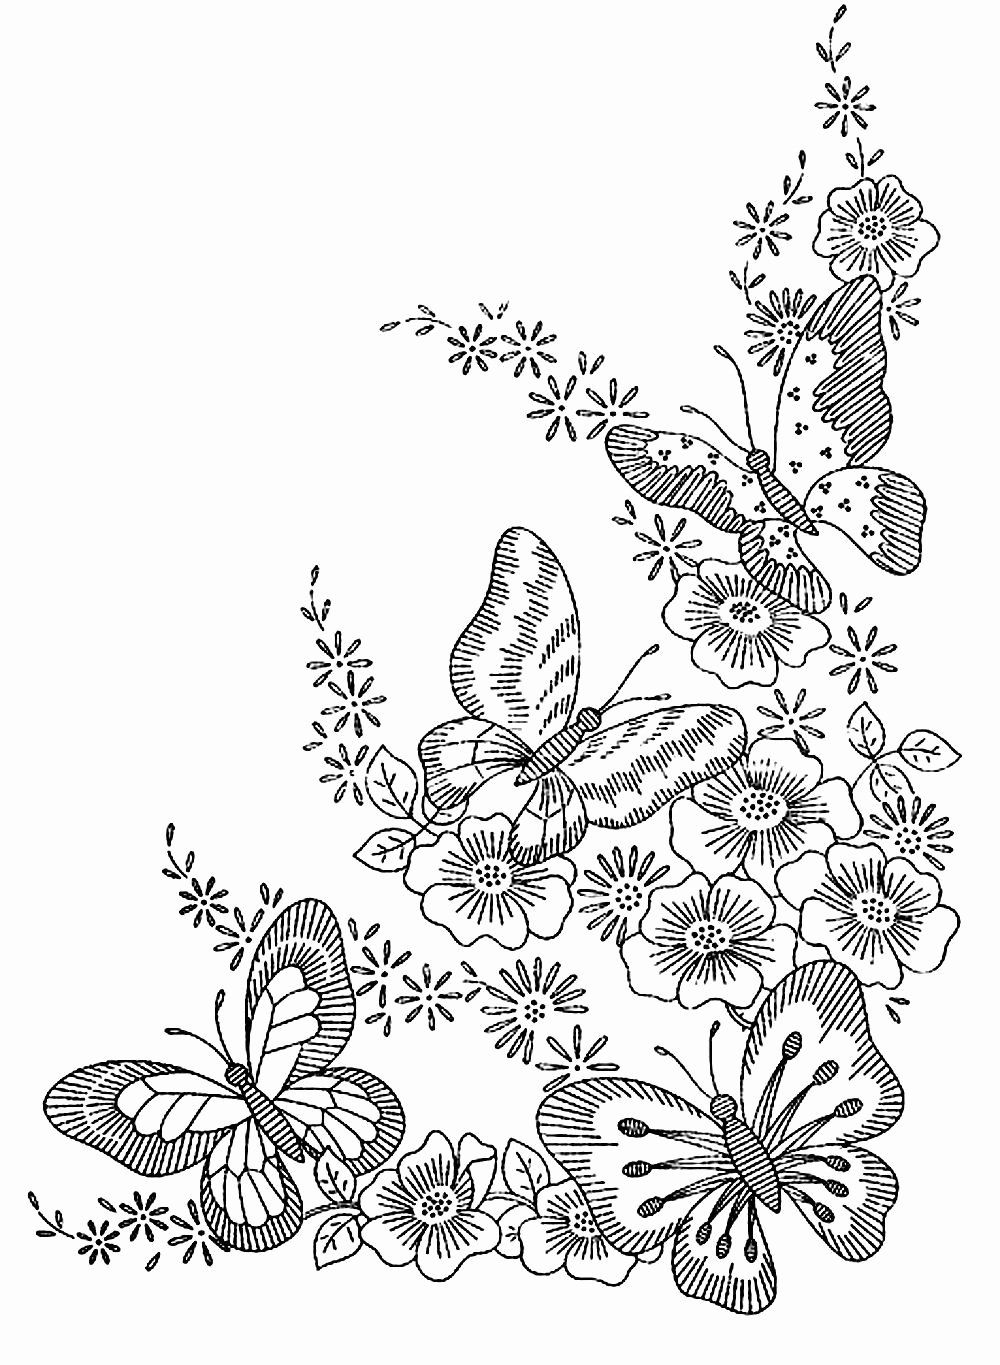 Spring Coloring Pages Adults Fresh Epingle Sur Printables In 2020 Butterfly Coloring Page Coloring Books Flower Coloring Pages [ 1365 x 1000 Pixel ]